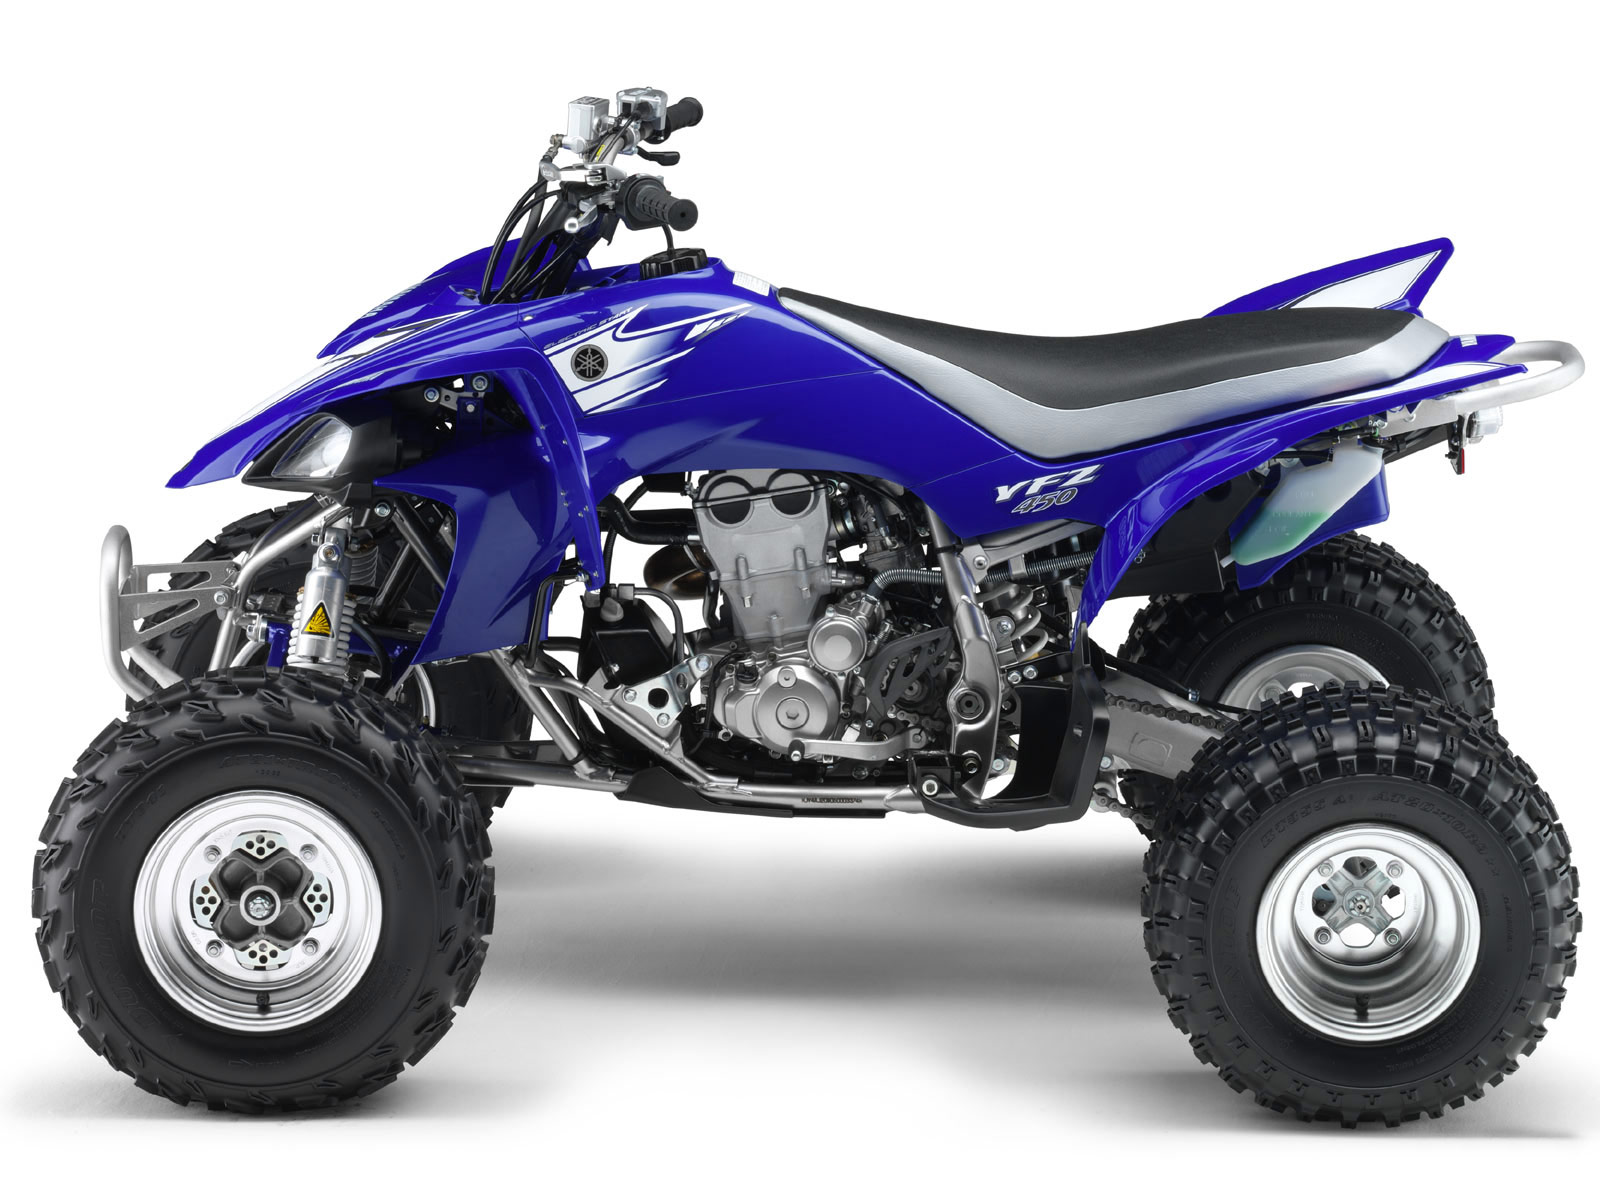 2007 YAMAHA YFZ 450 pictures | specs | accident lawyers info